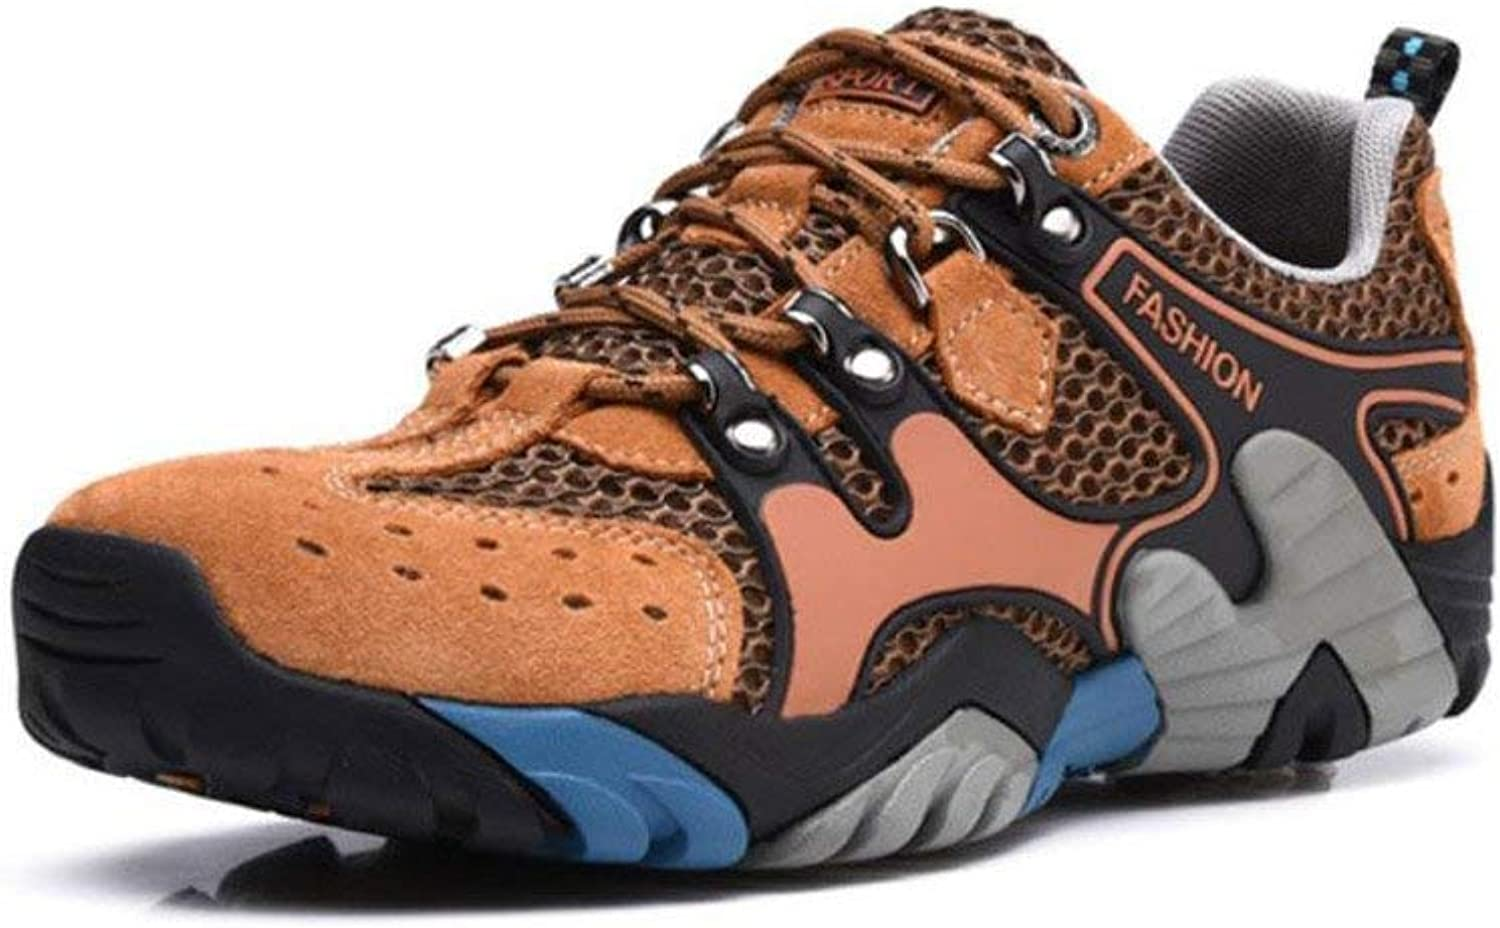 Sneakers Walking Shoes 2019 Summer Hot Sale Men Cool Breathable Sandals Trainers Outdoor Walking Beach Male Light Comfortable Shoes Cheap Sneaker Colours Are Striking